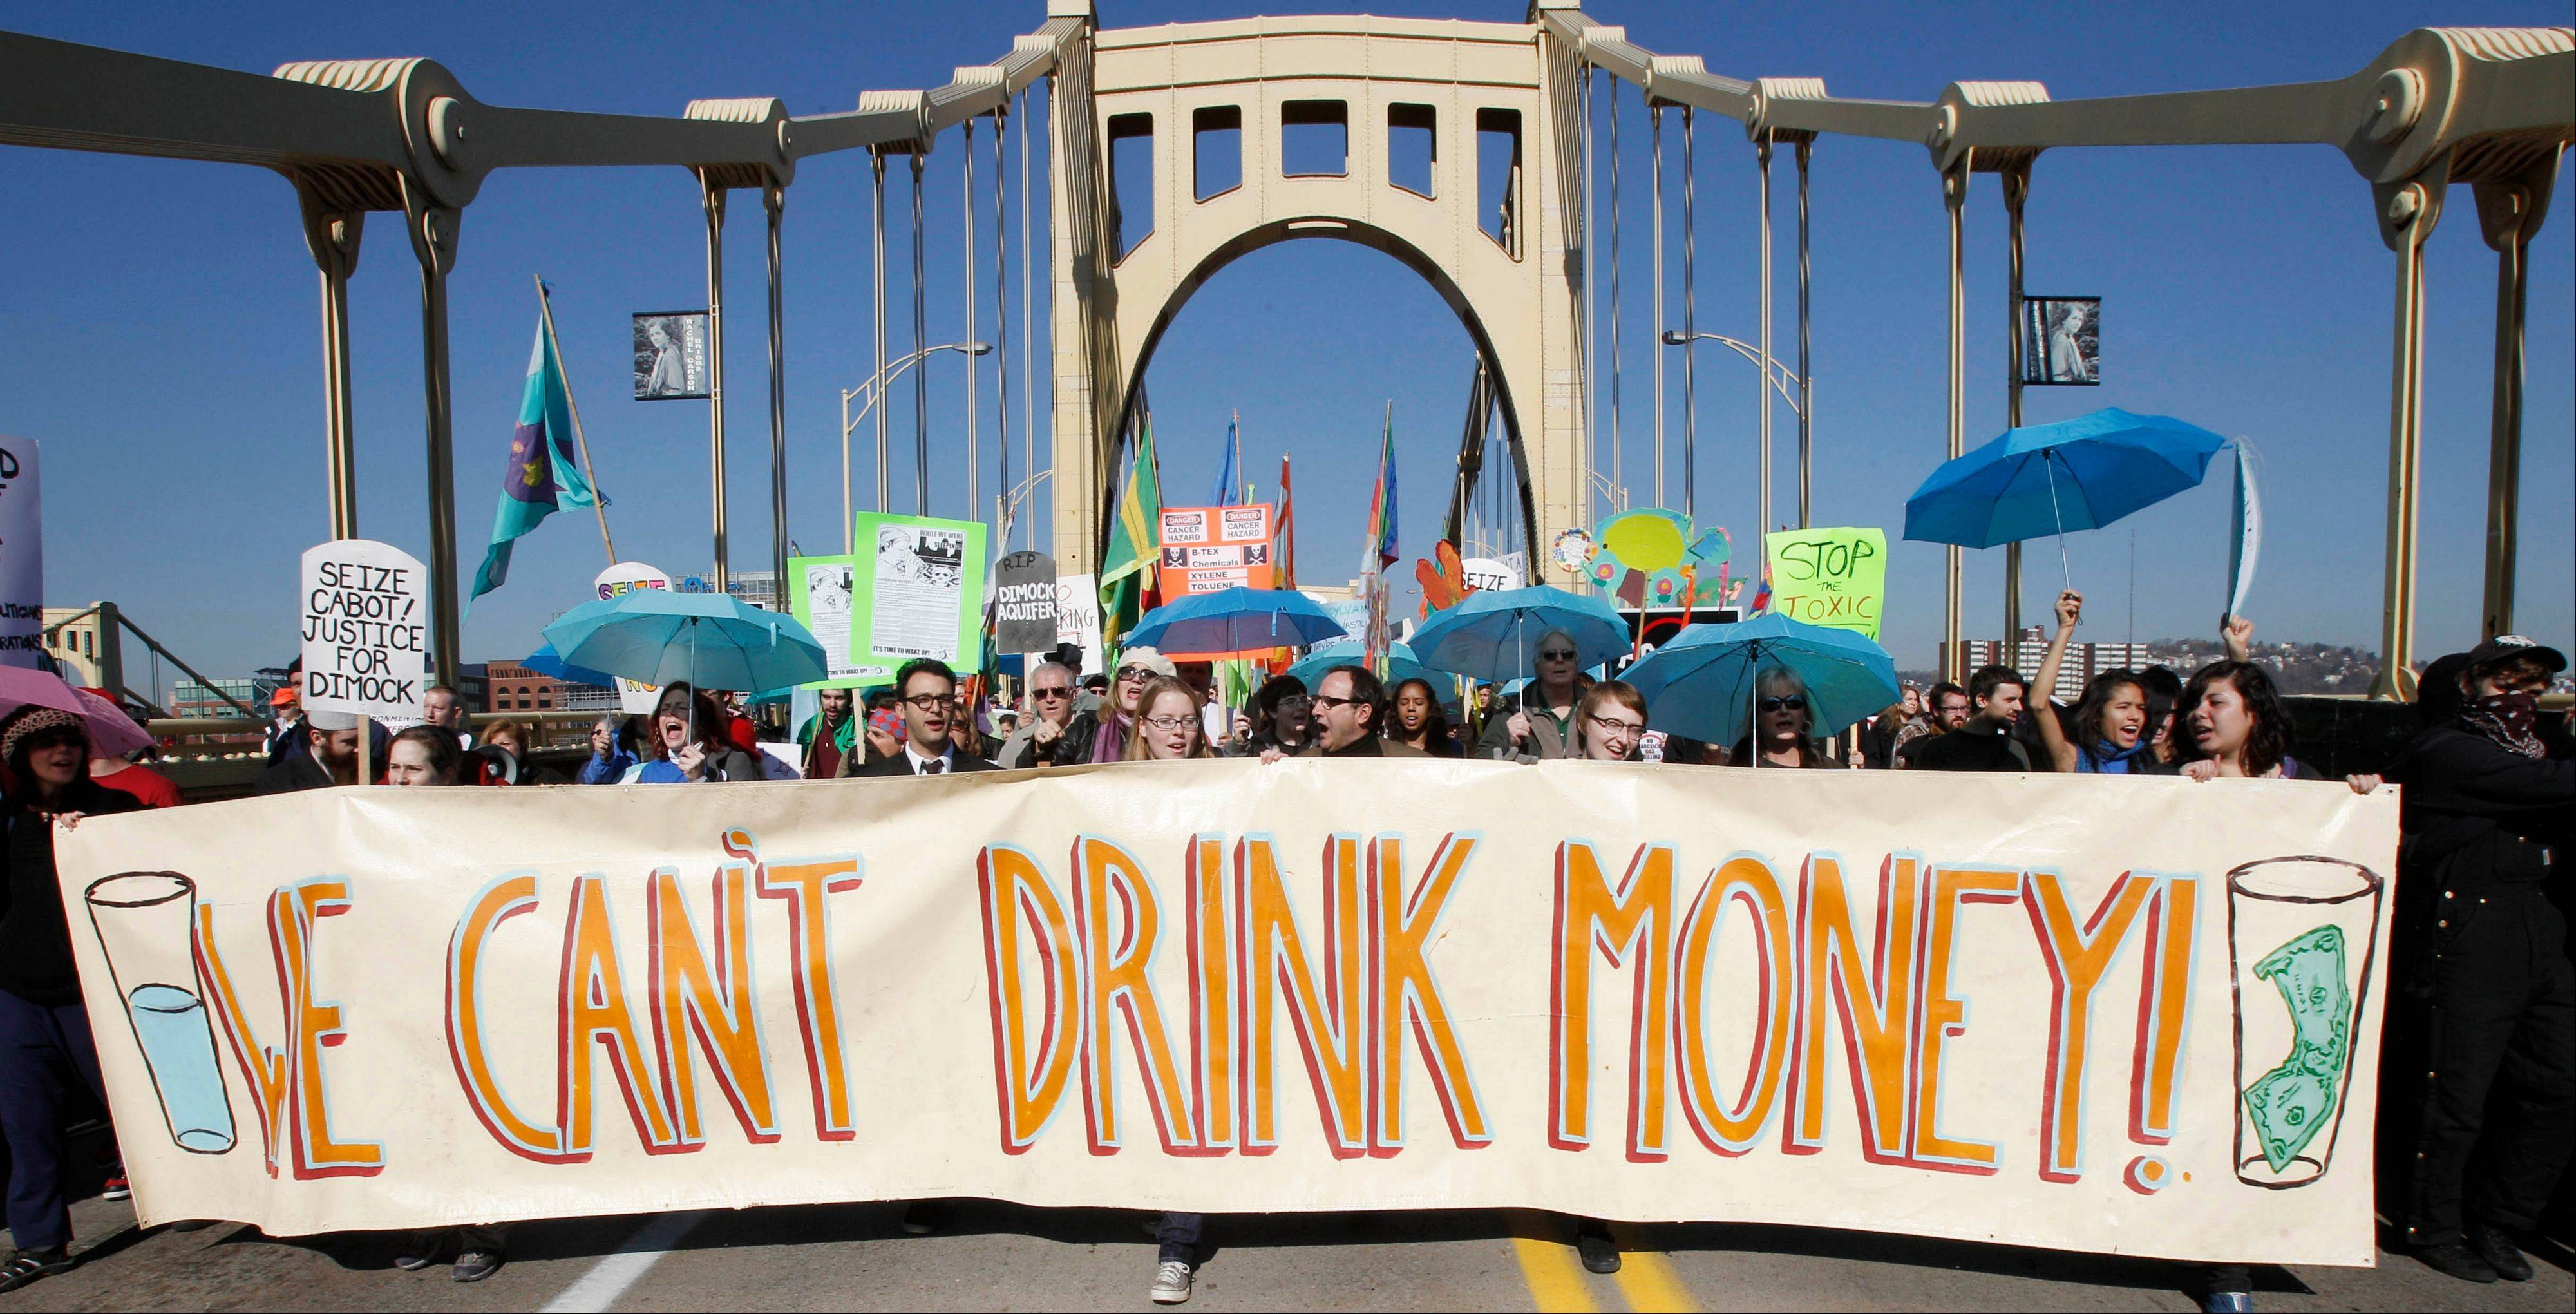 Marchers concerned with water pollution protest against hydraulic fracturing and gas well drilling in Pittsburgh in this file photo from Nov. 3, 2010.